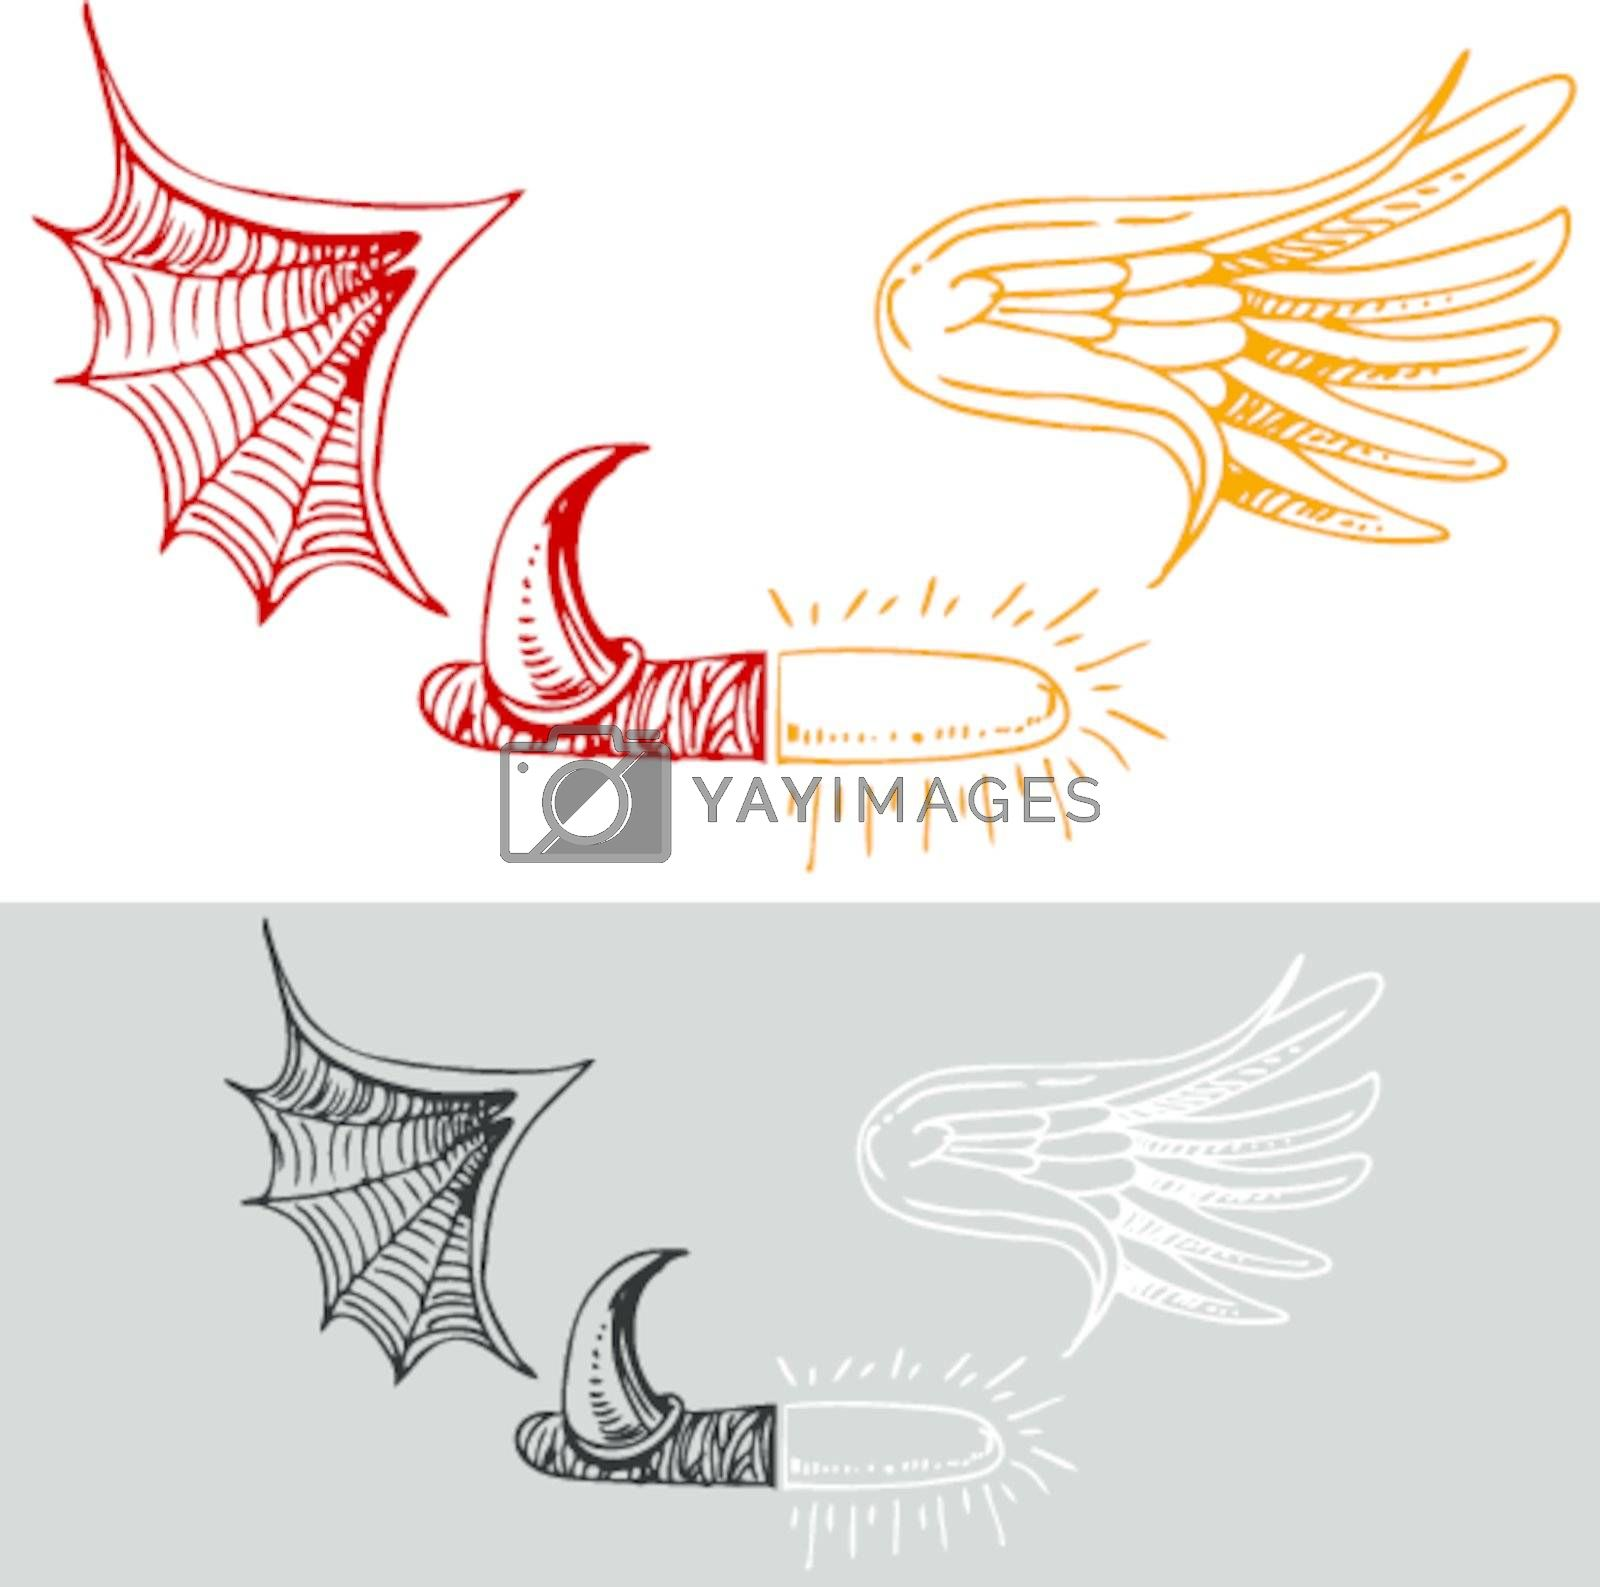 An image of a half angel and devil drawing.